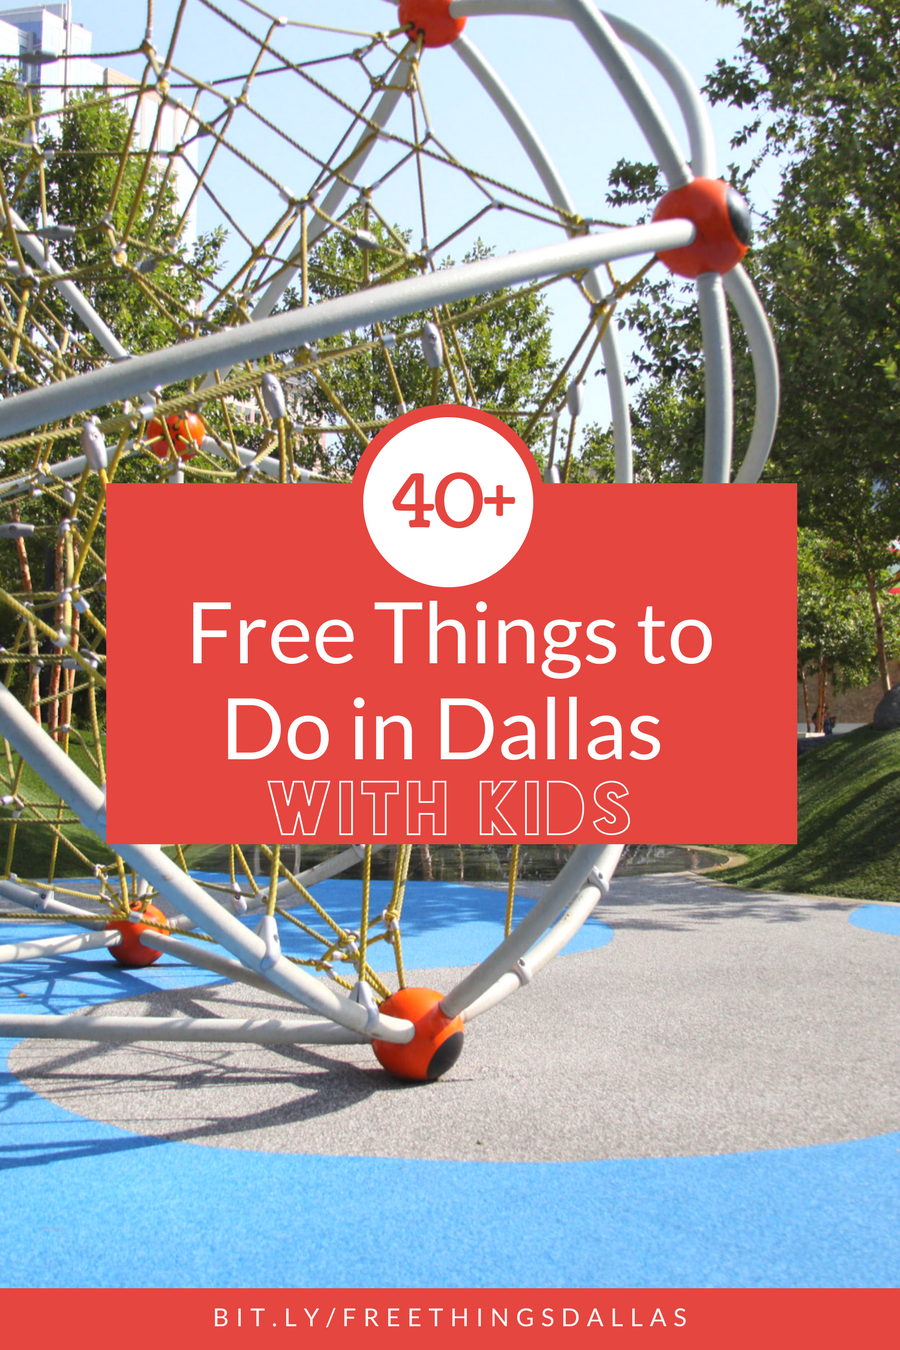 Free Things to Do in Dallas with Kids